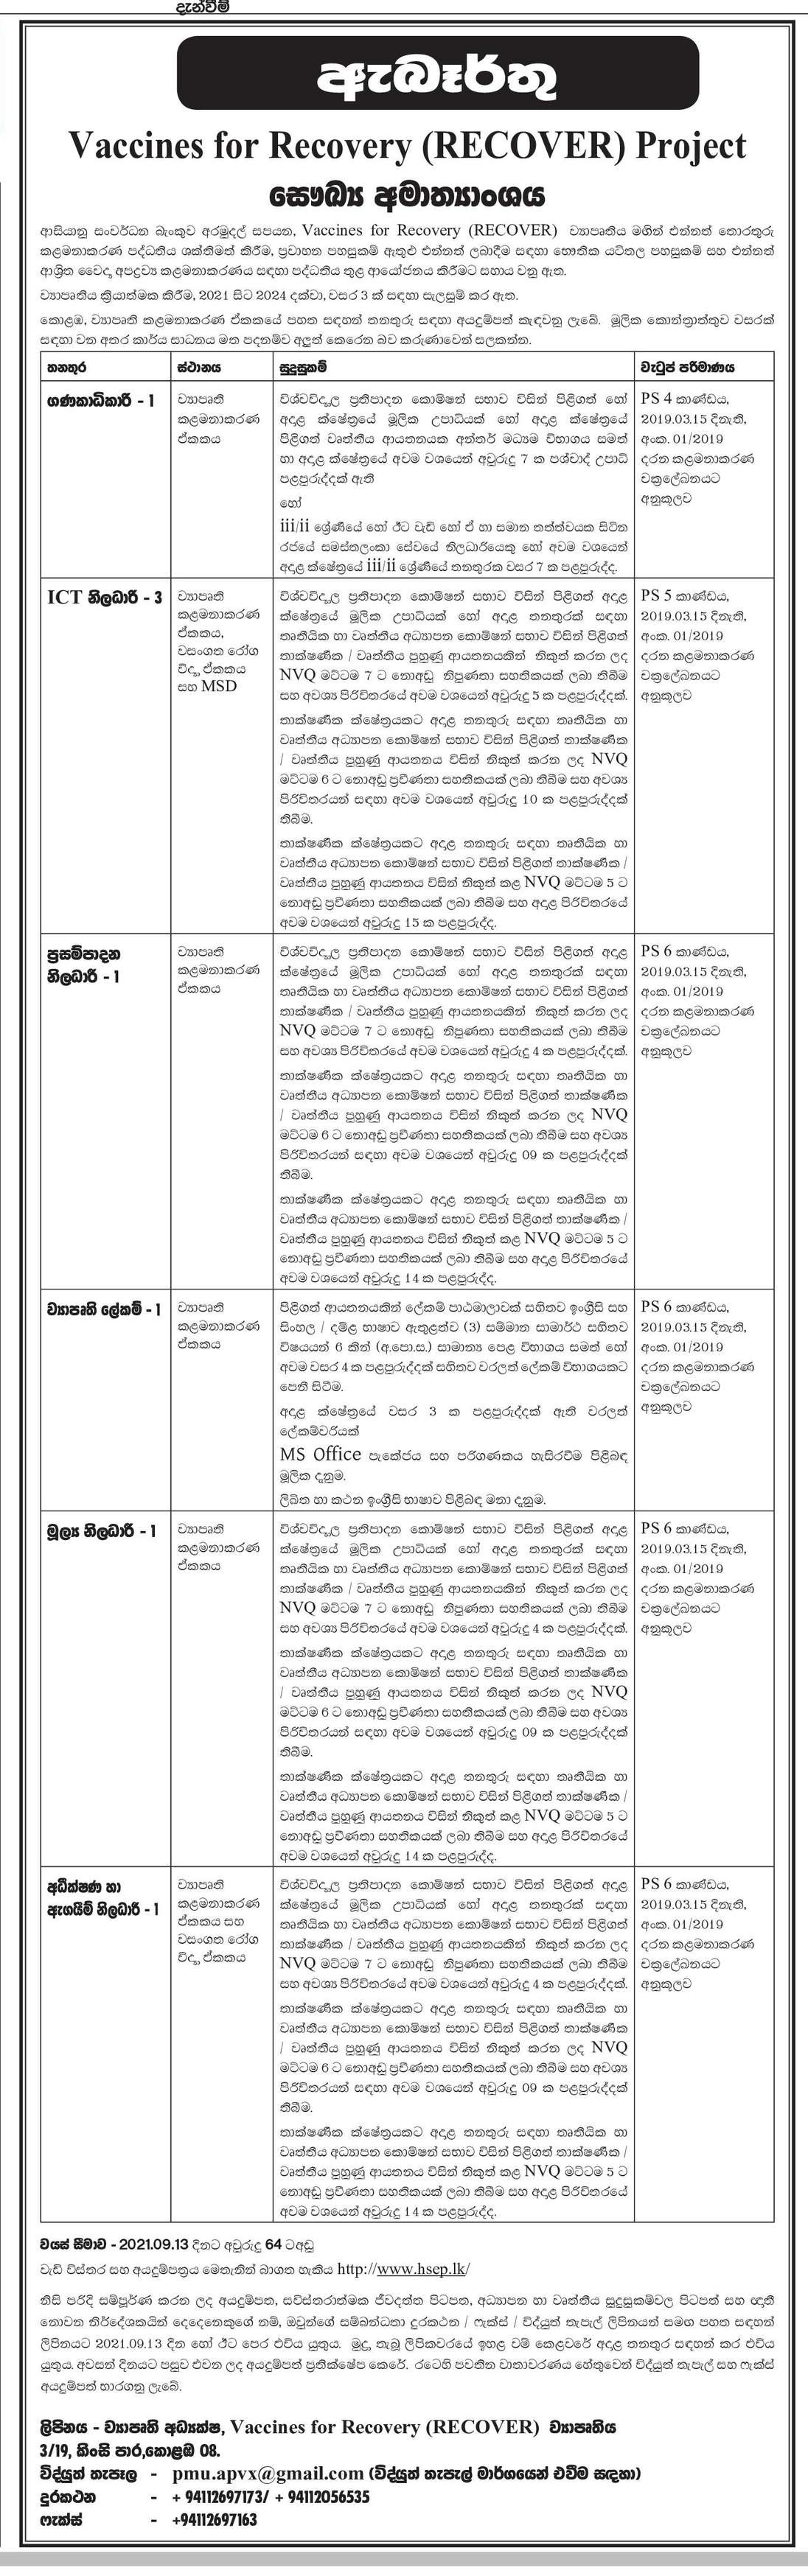 Finance Officer, ICT Officer, Accountant, Project Secretary, Procurement Officer